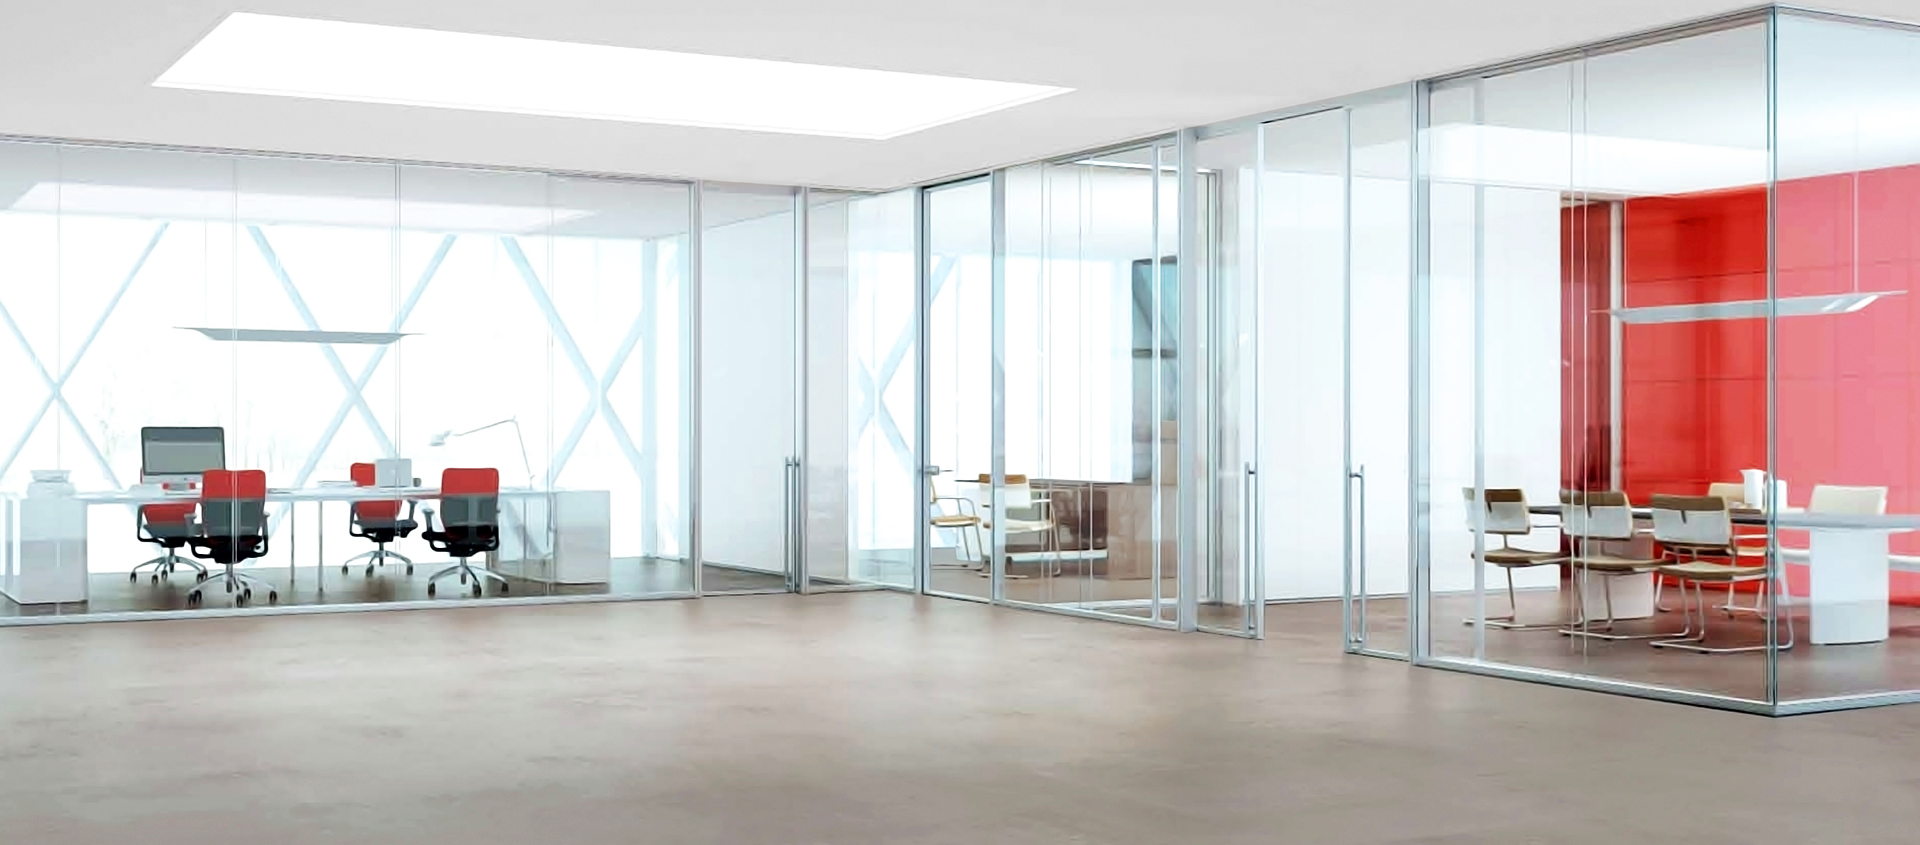 Moodwall demountable glass walls by modernfoldstyles for Electric moving wall pictures